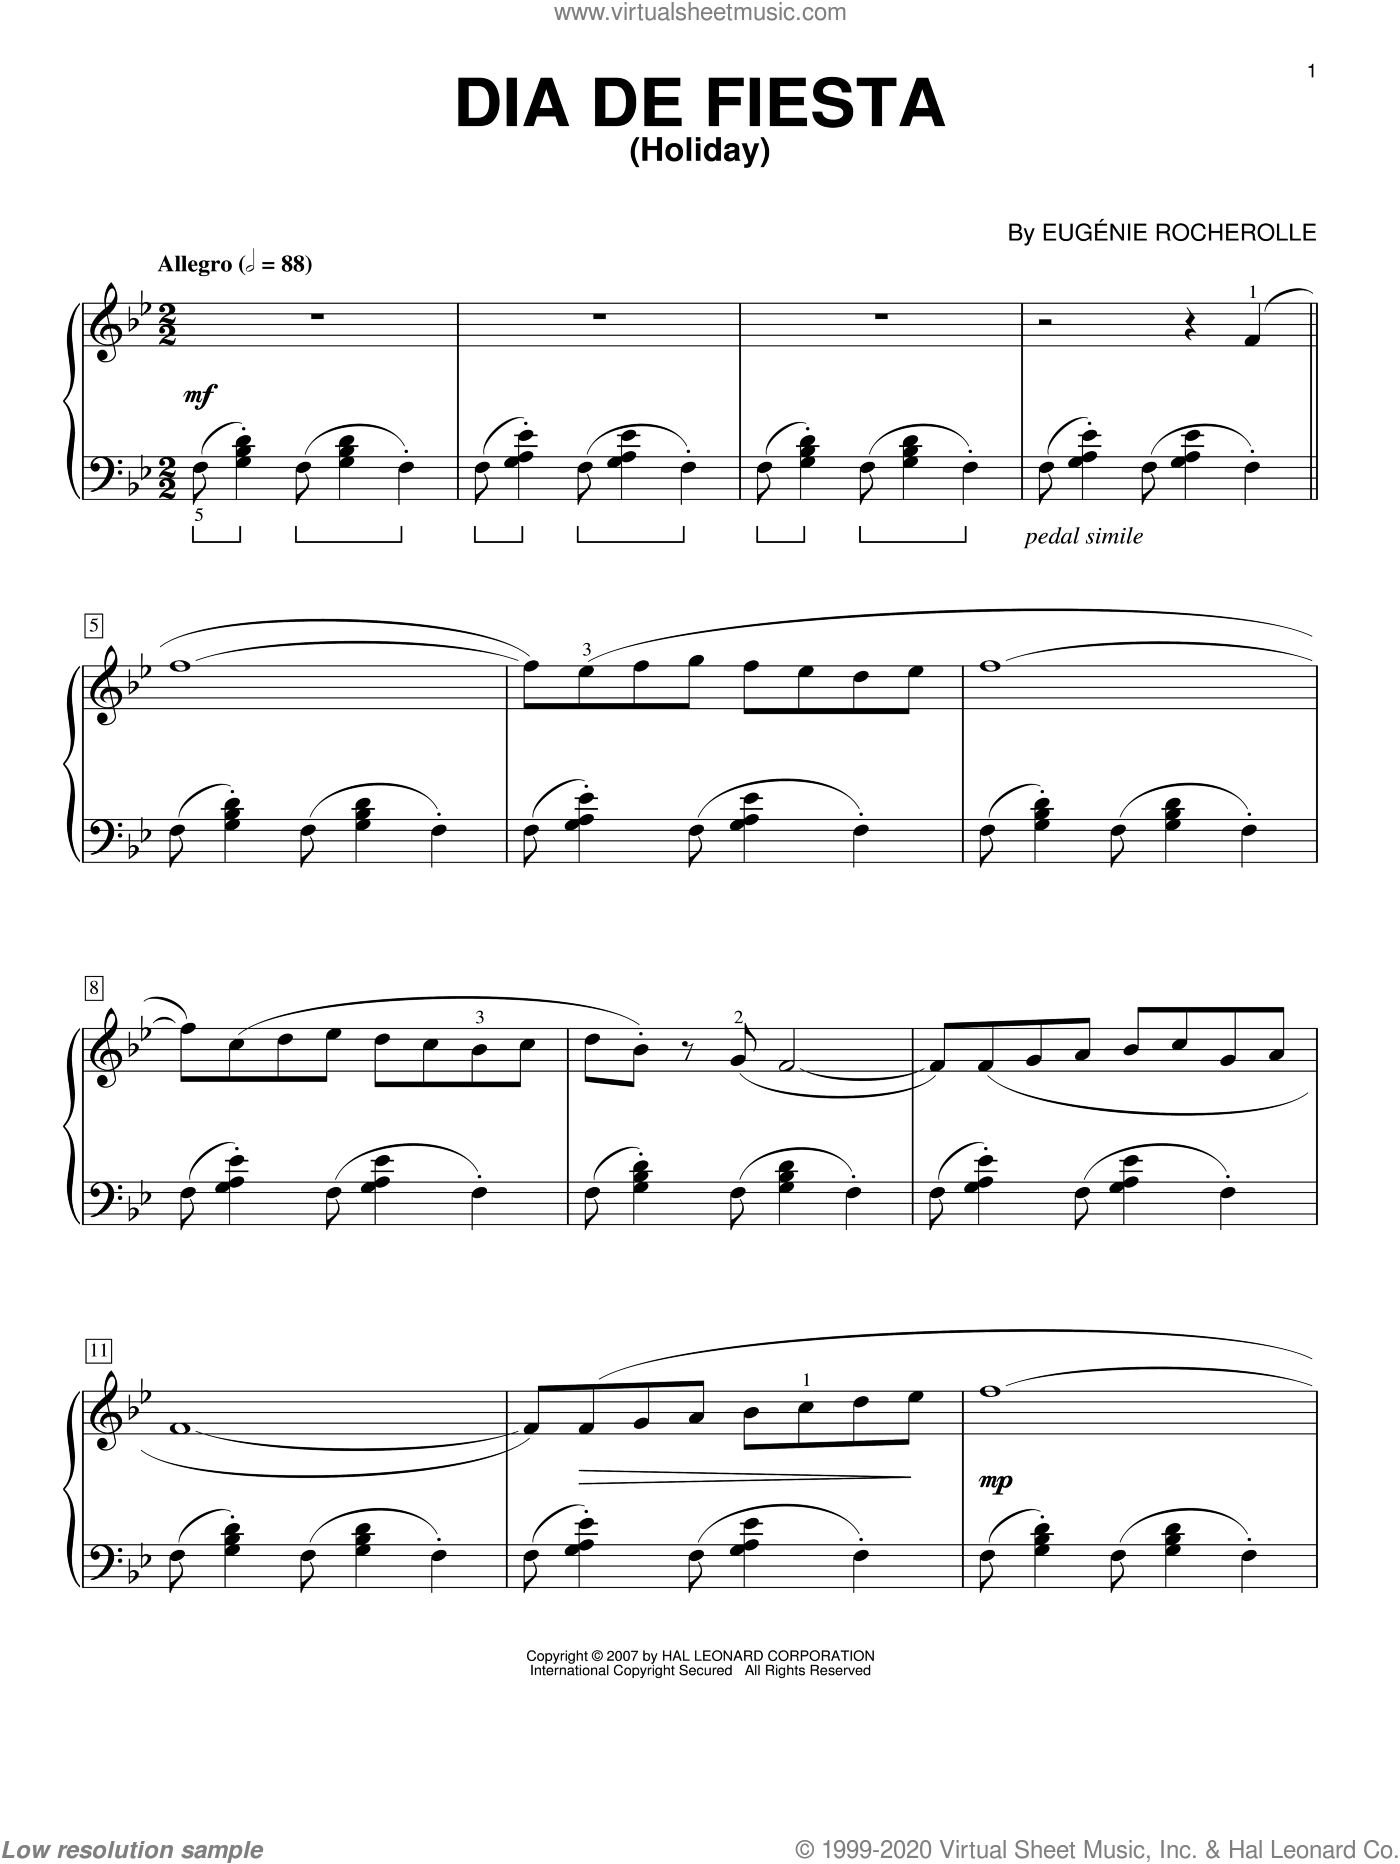 Dia De Fiesta (Holiday) sheet music for piano solo by Eugenie Rocherolle, intermediate skill level